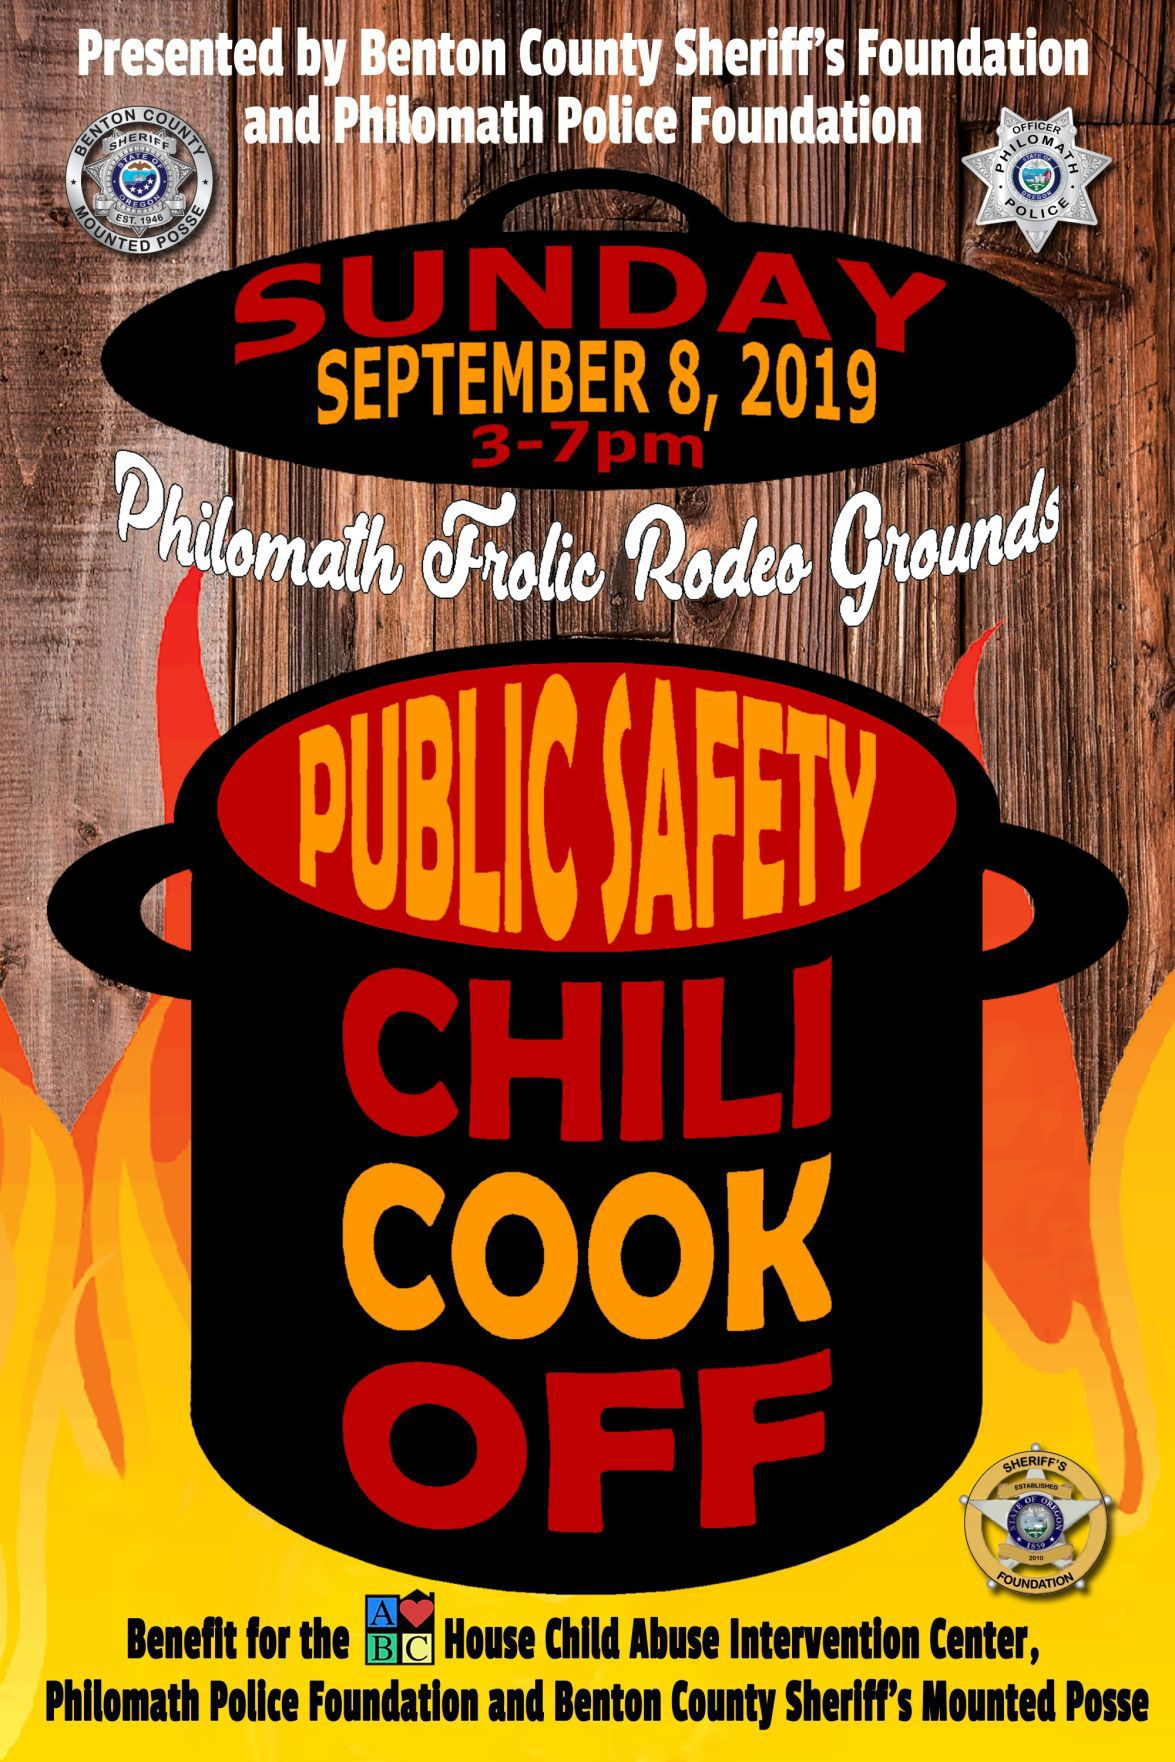 Chili cook-off poster 2019